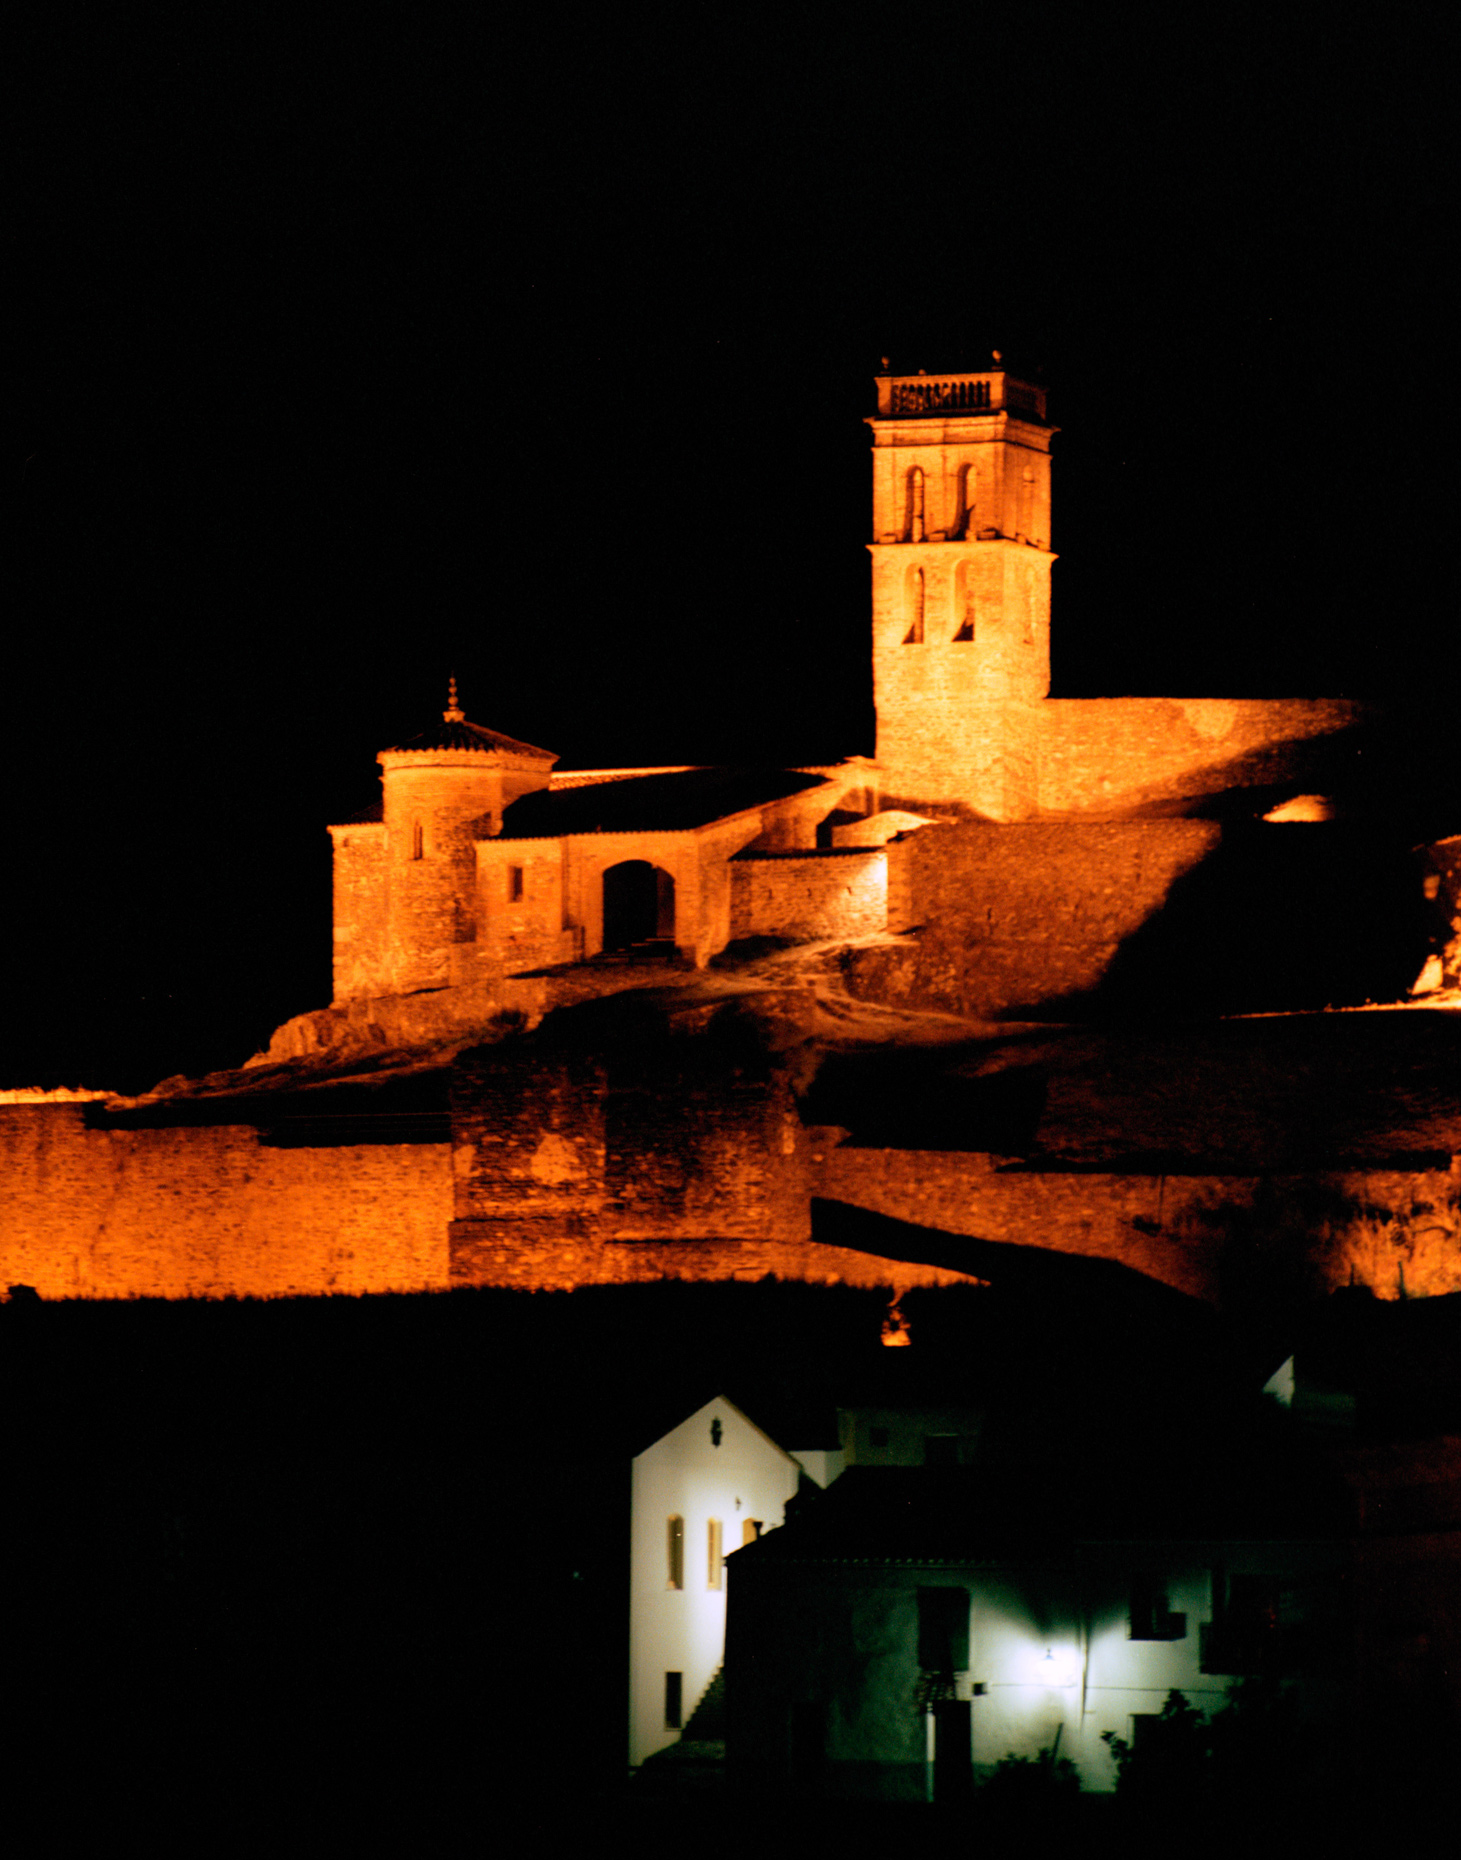 FrancescoLagnese_el_monaster_by_night